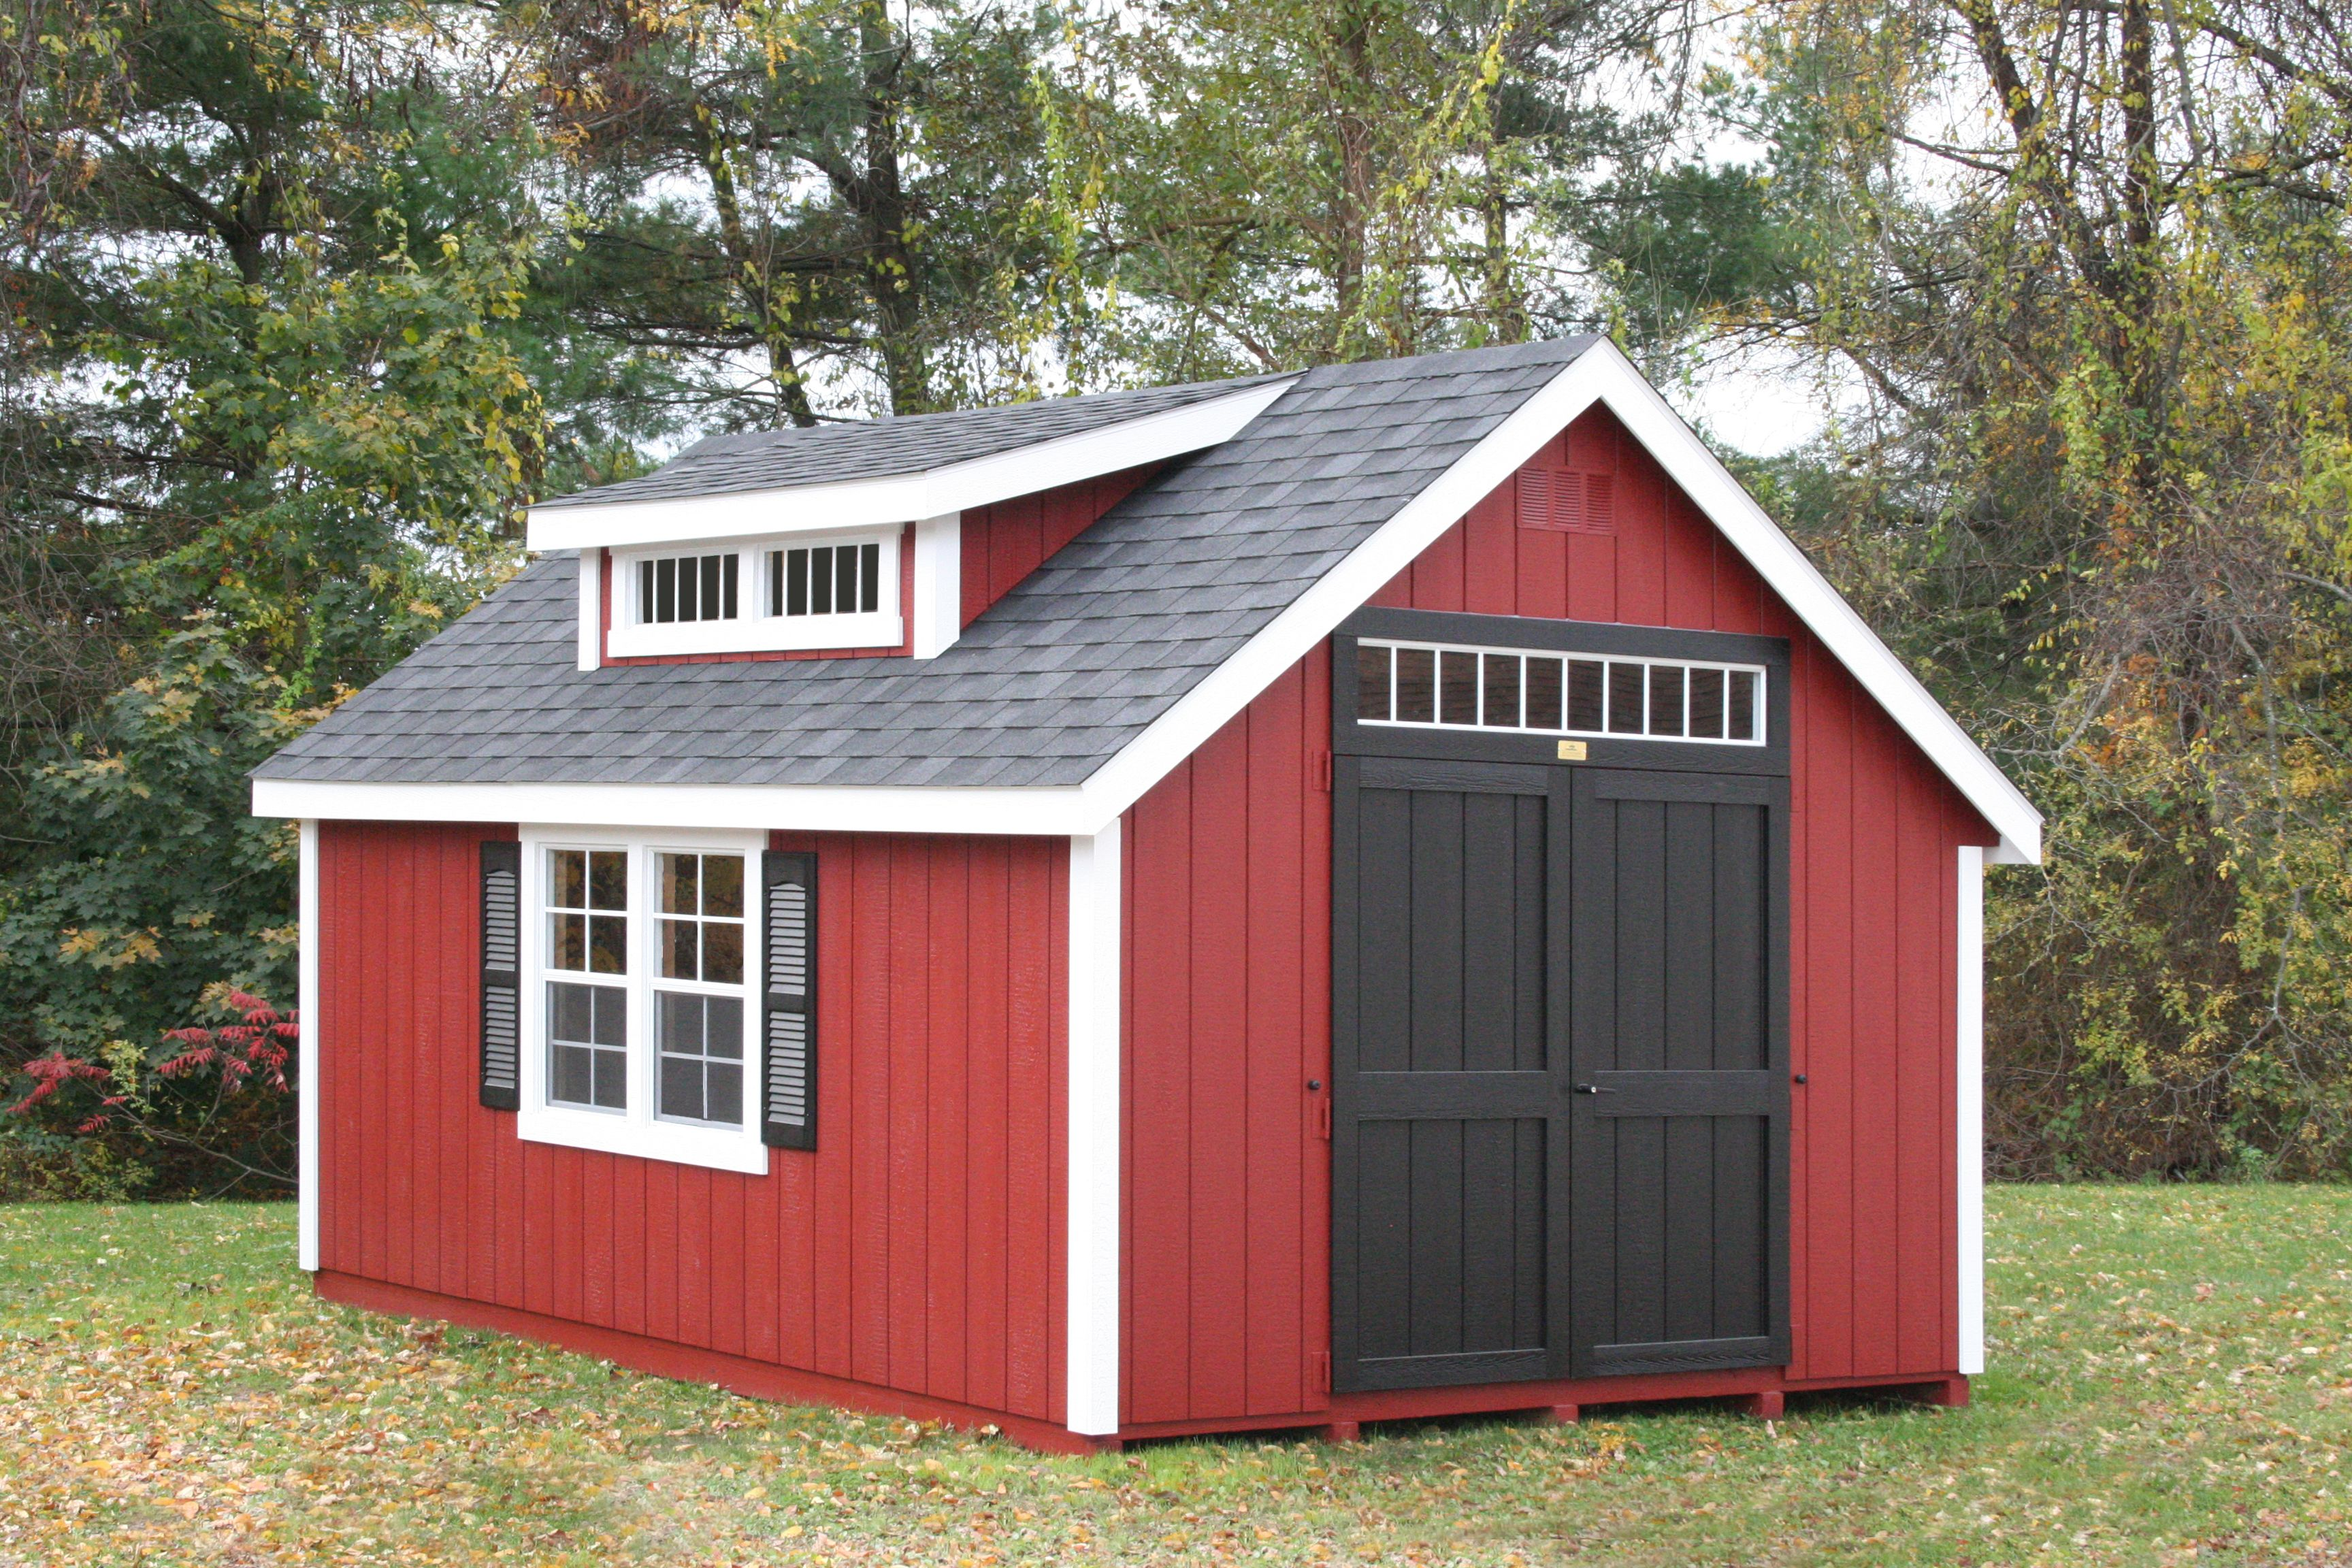 Adding A Mini Shed Dormer With Transom Windows To Our New England Colonial Has Been A Popular Option For Many Of Our Customers Shed Shed Design Mini Shed